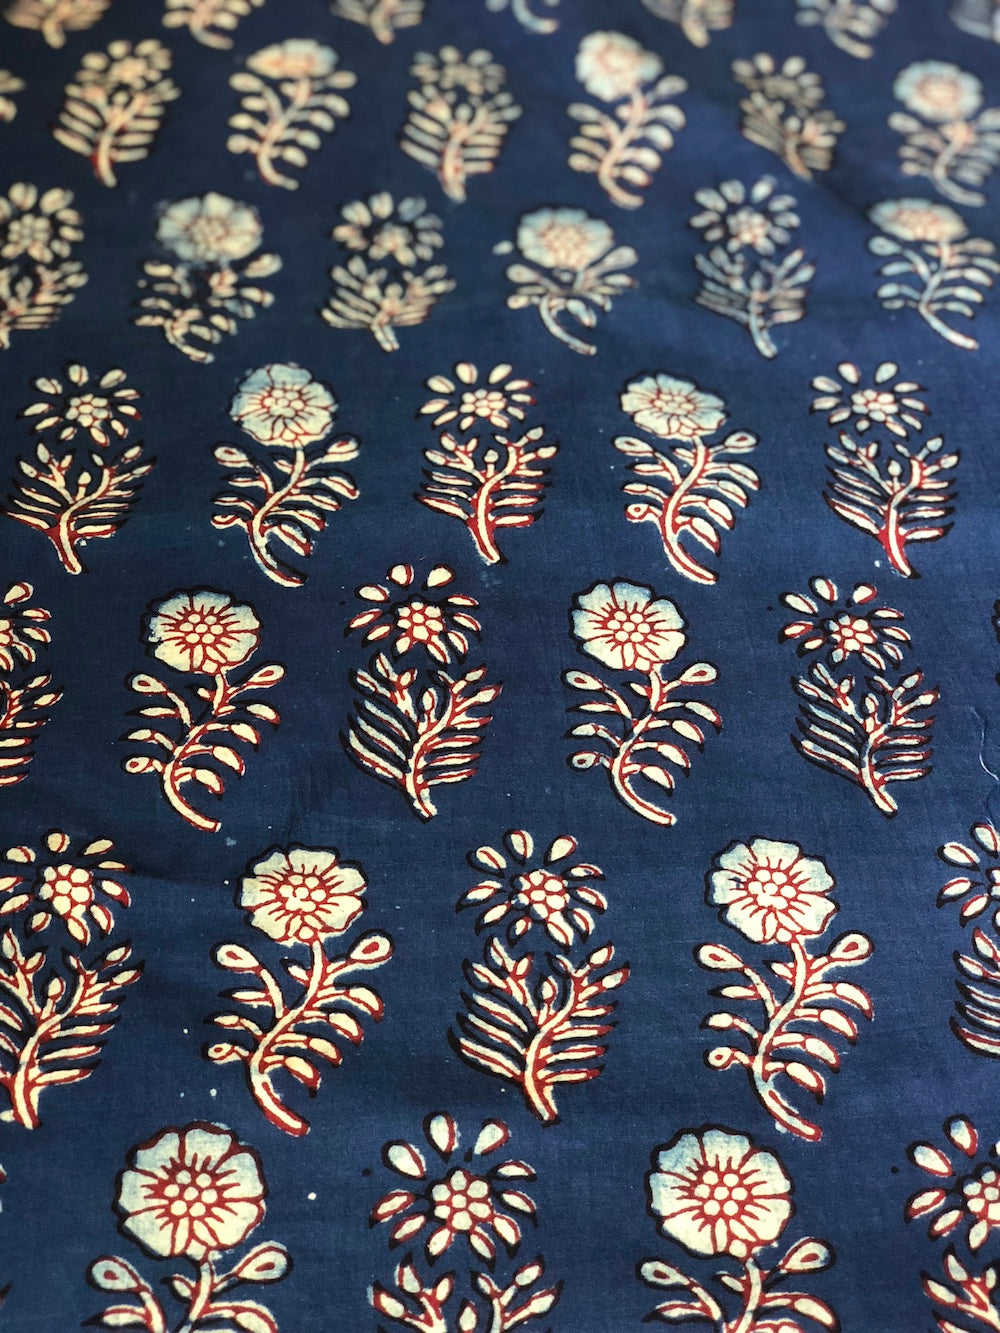 Maalti Indigo Cotton Fabric